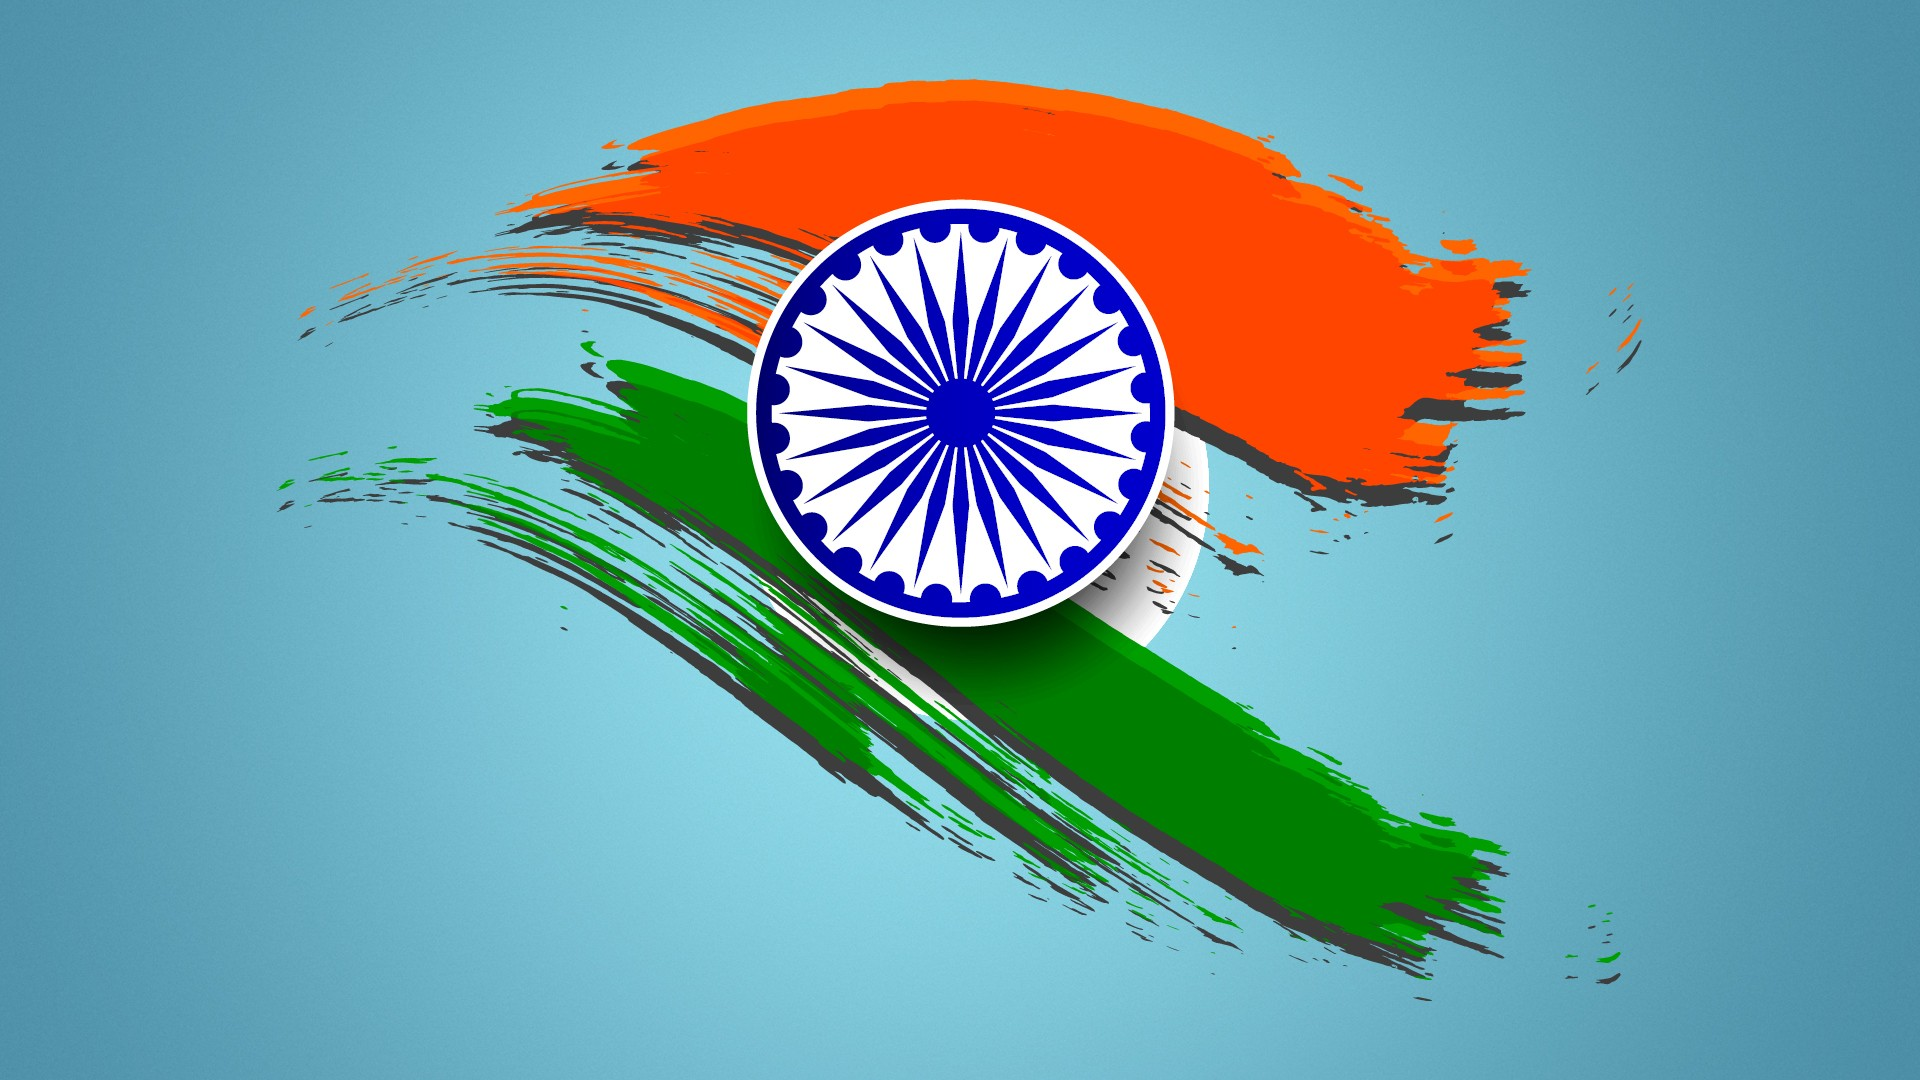 Indian Independence Day Wallpapers Full HD 34902   Baltana 1920x1080